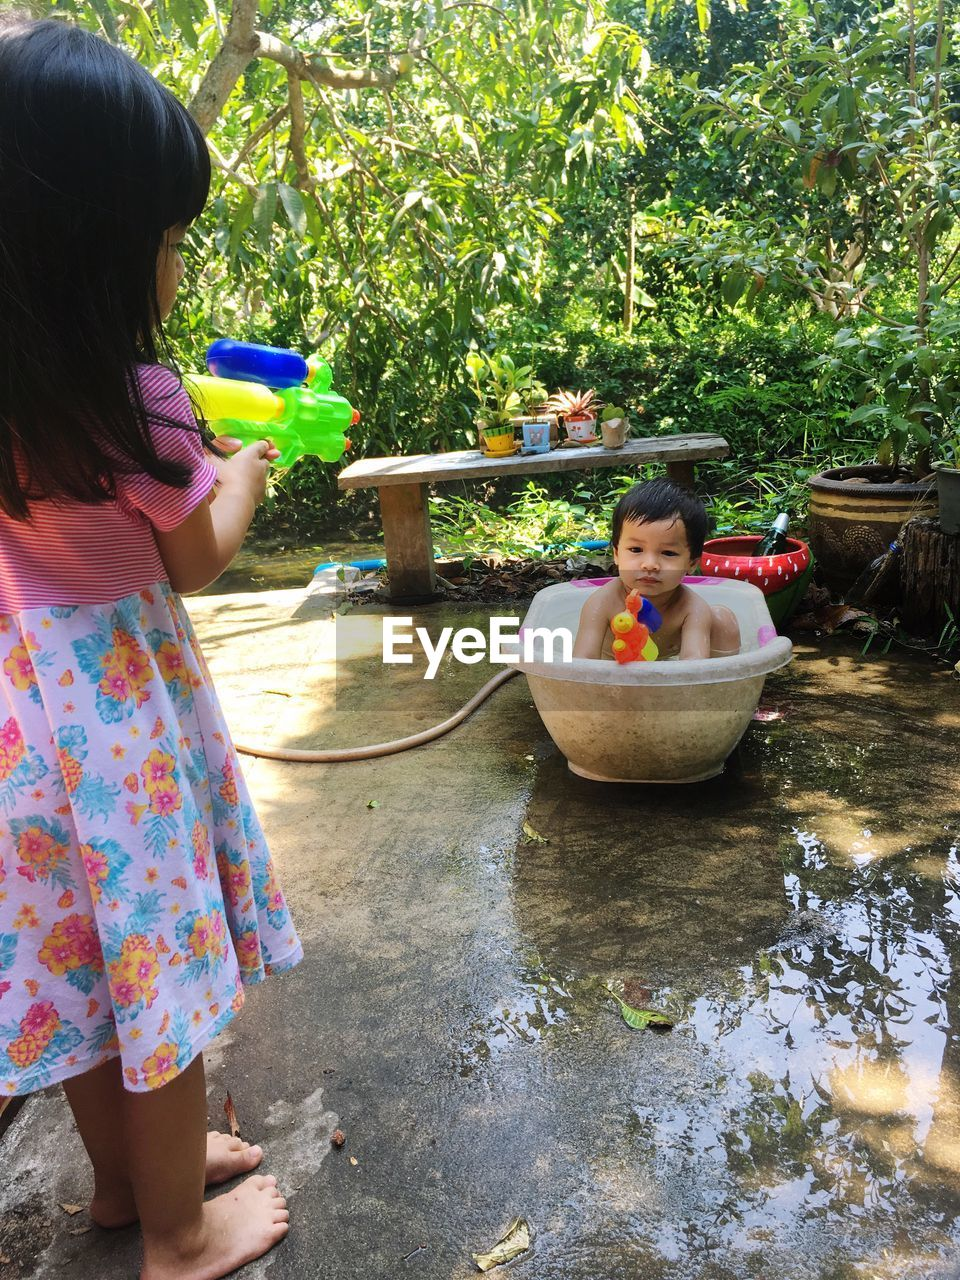 Siblings playing with squirt gun in yard